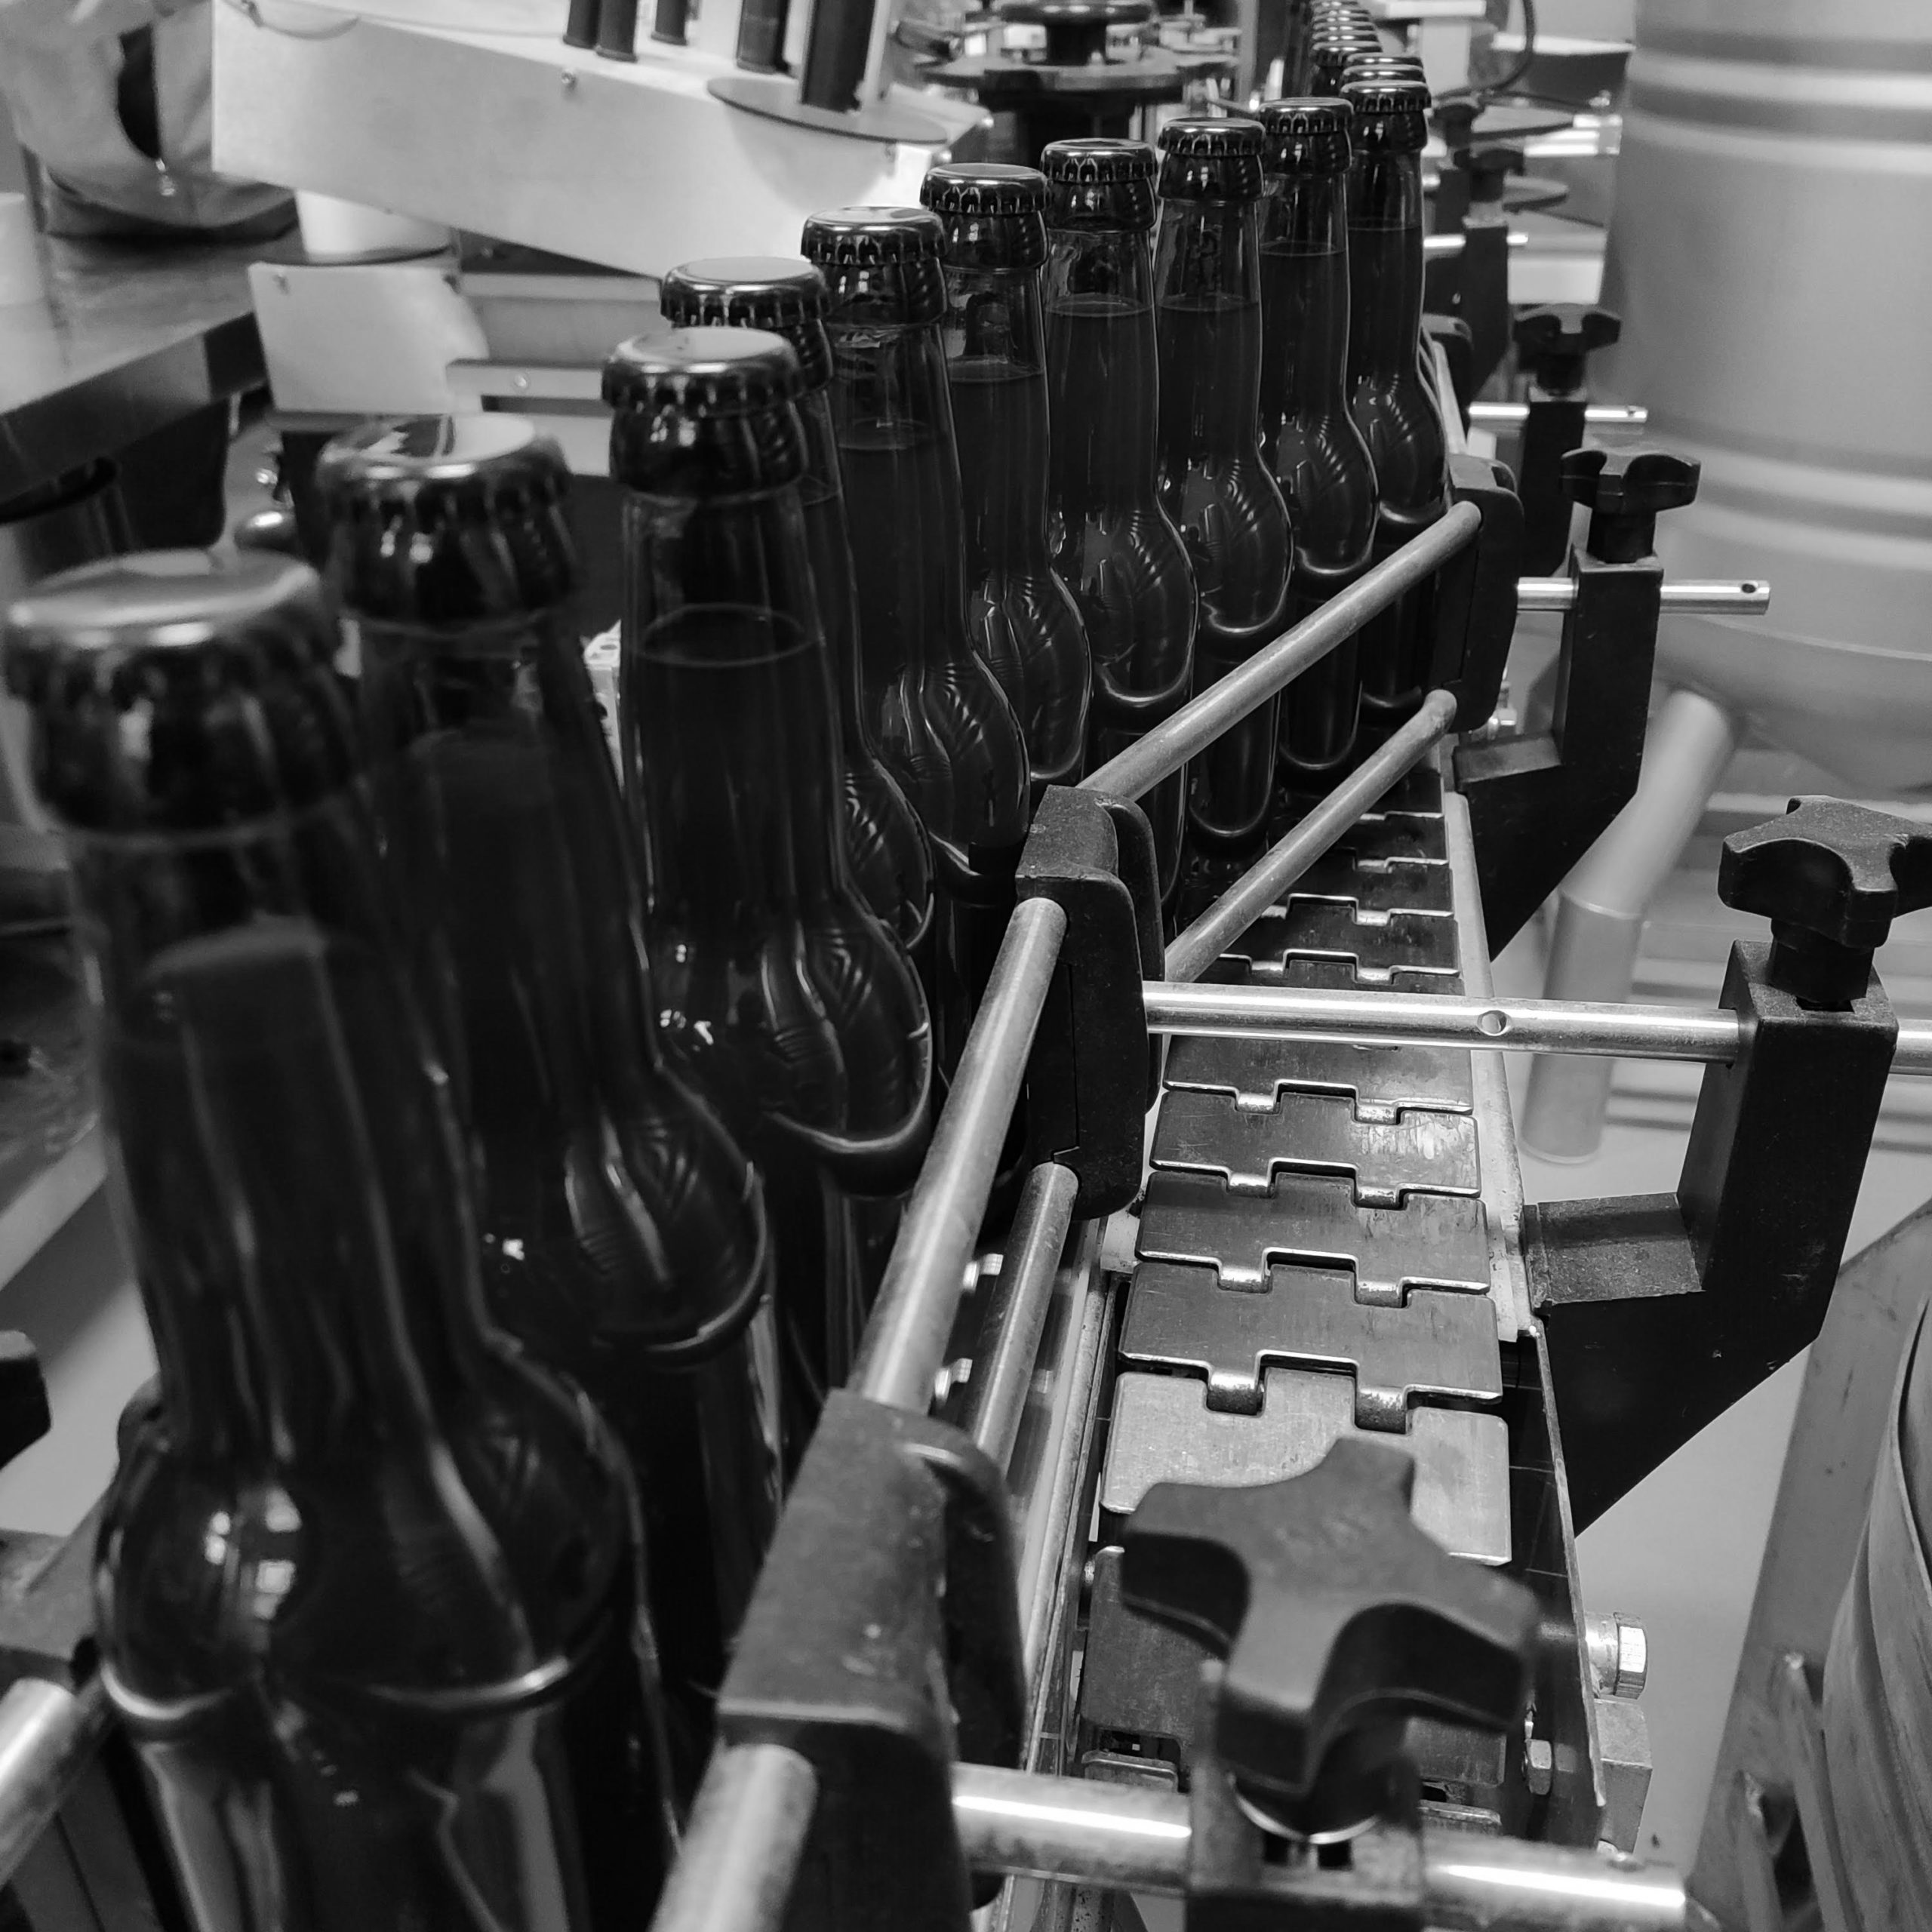 https://blackwellbrewery.ch/wp-content/uploads/2020/05/post_bottling-scaled.jpg